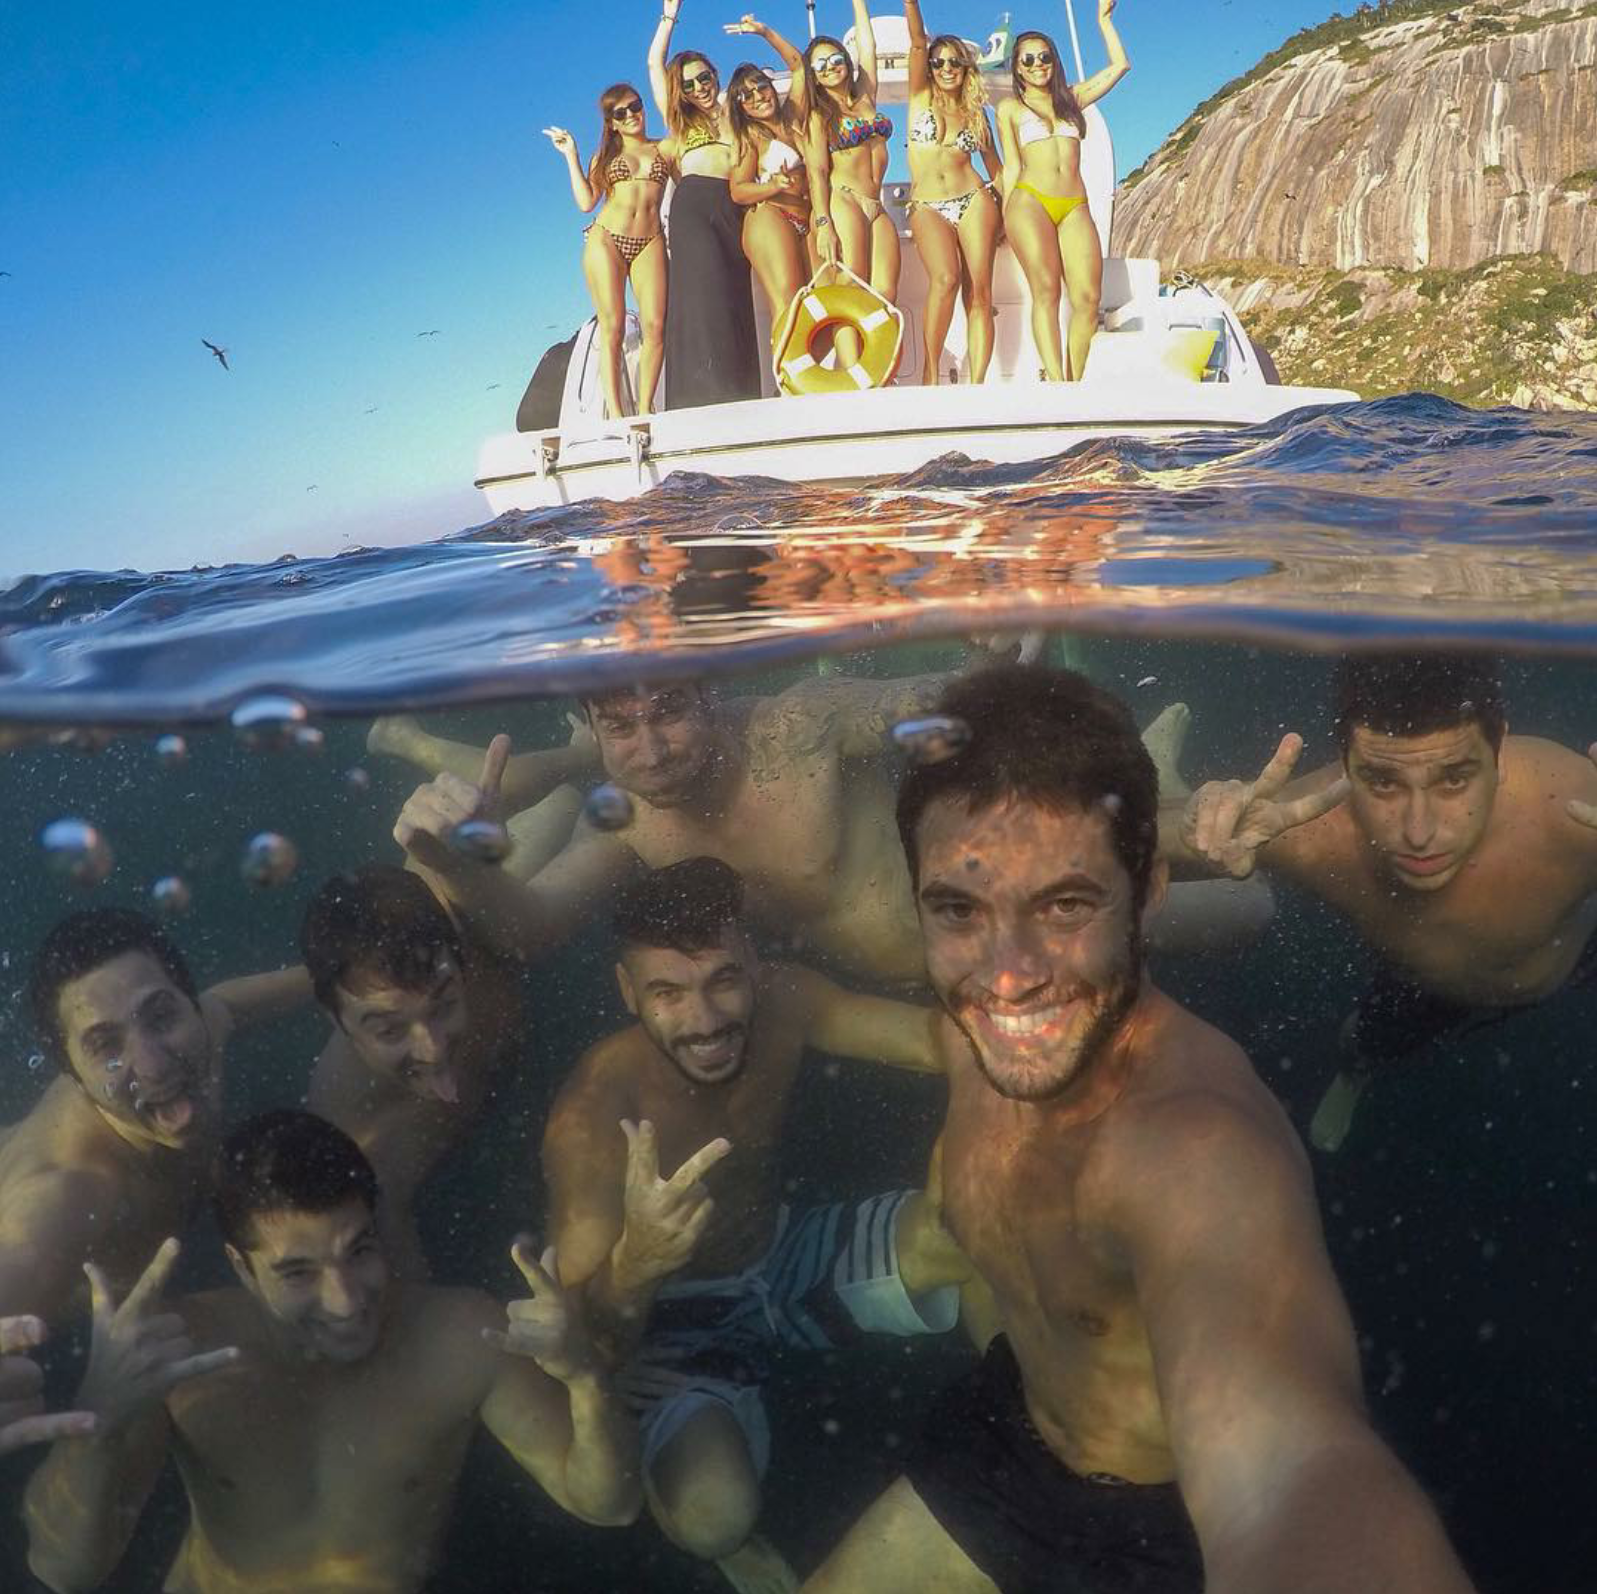 Pin By ω On Selfie Pinterest Cameras - Guy takes epic selfie top christ redeemer statue brazil